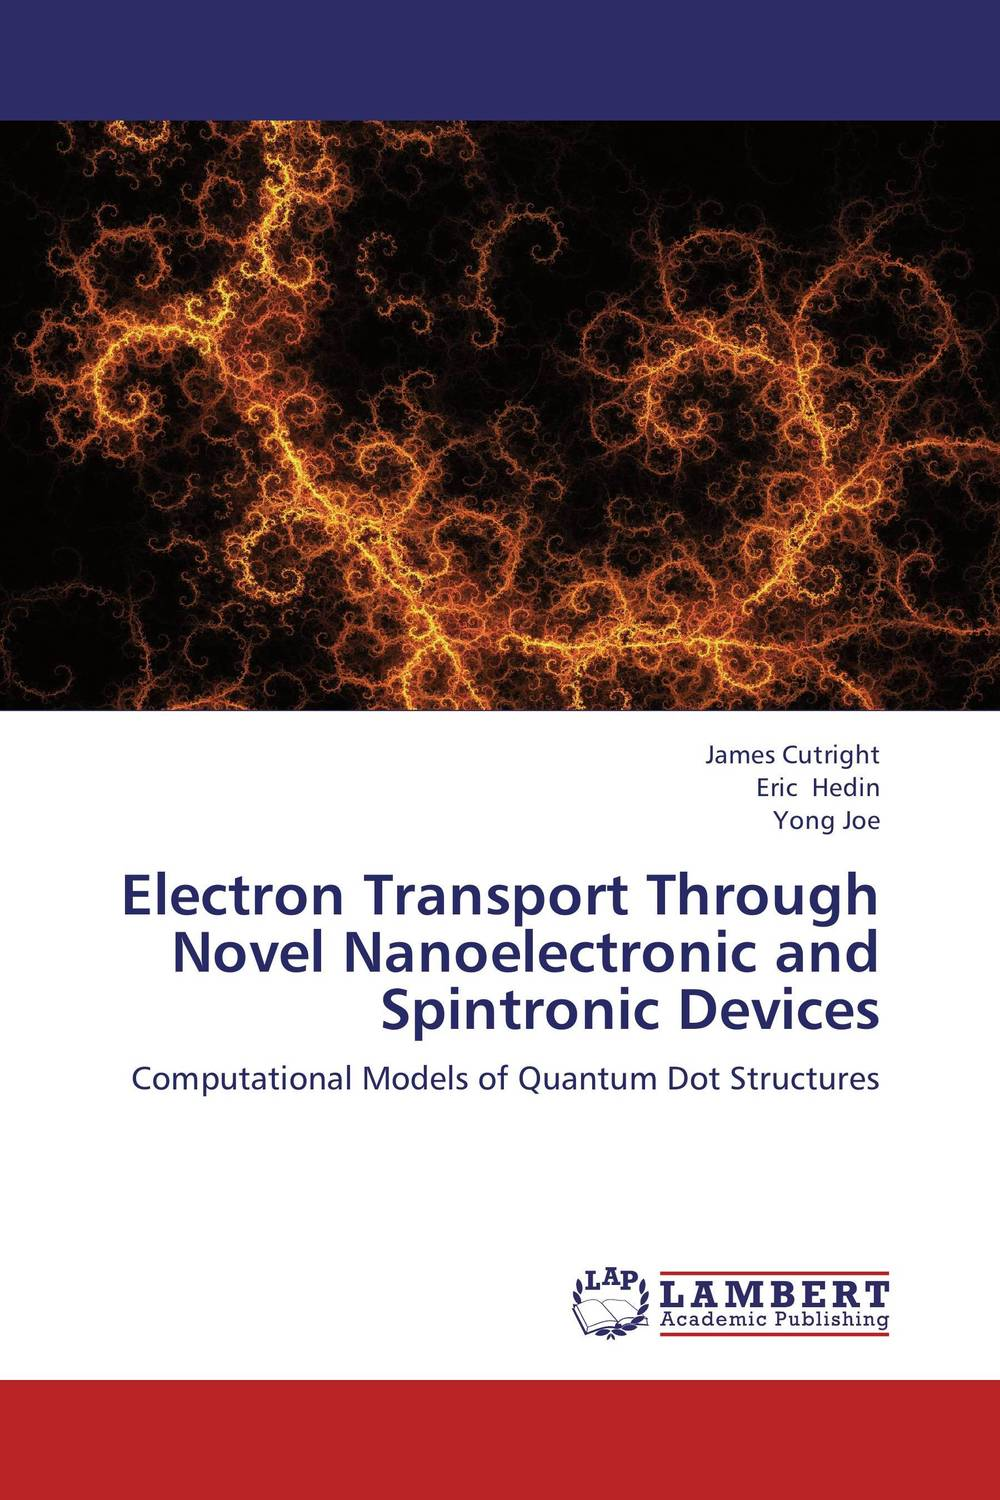 Electron Transport Through Novel Nanoelectronic and Spintronic Devices the lonely polygamist – a novel